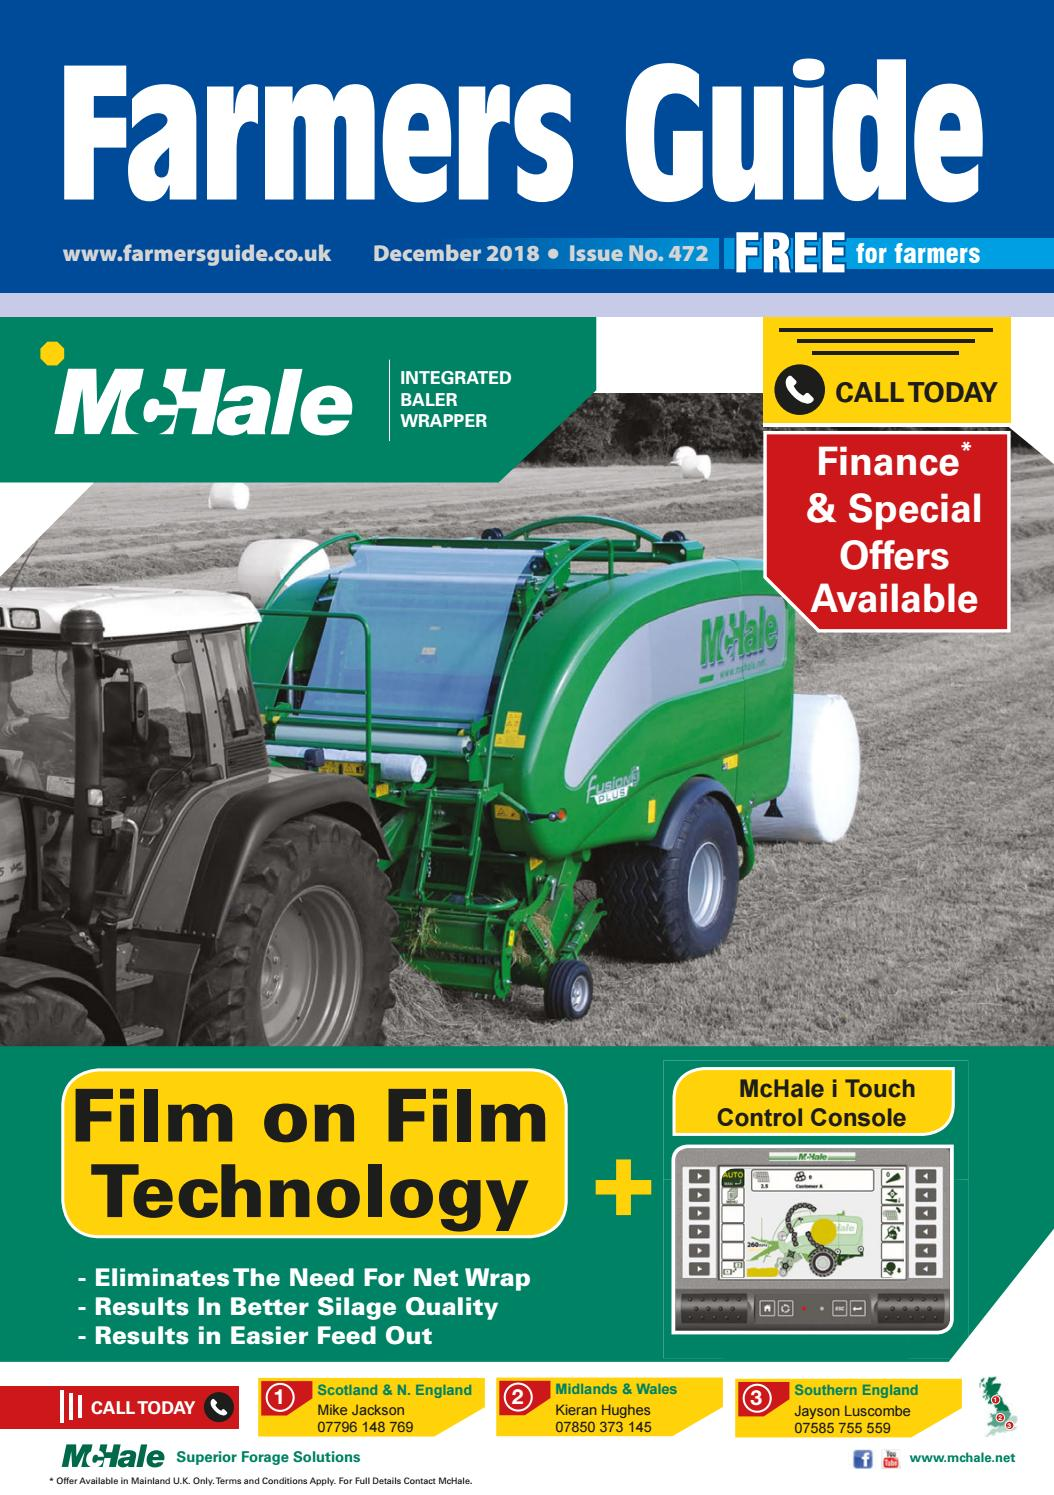 Farmers Guide December 2018 by Farmers Guide - issuu